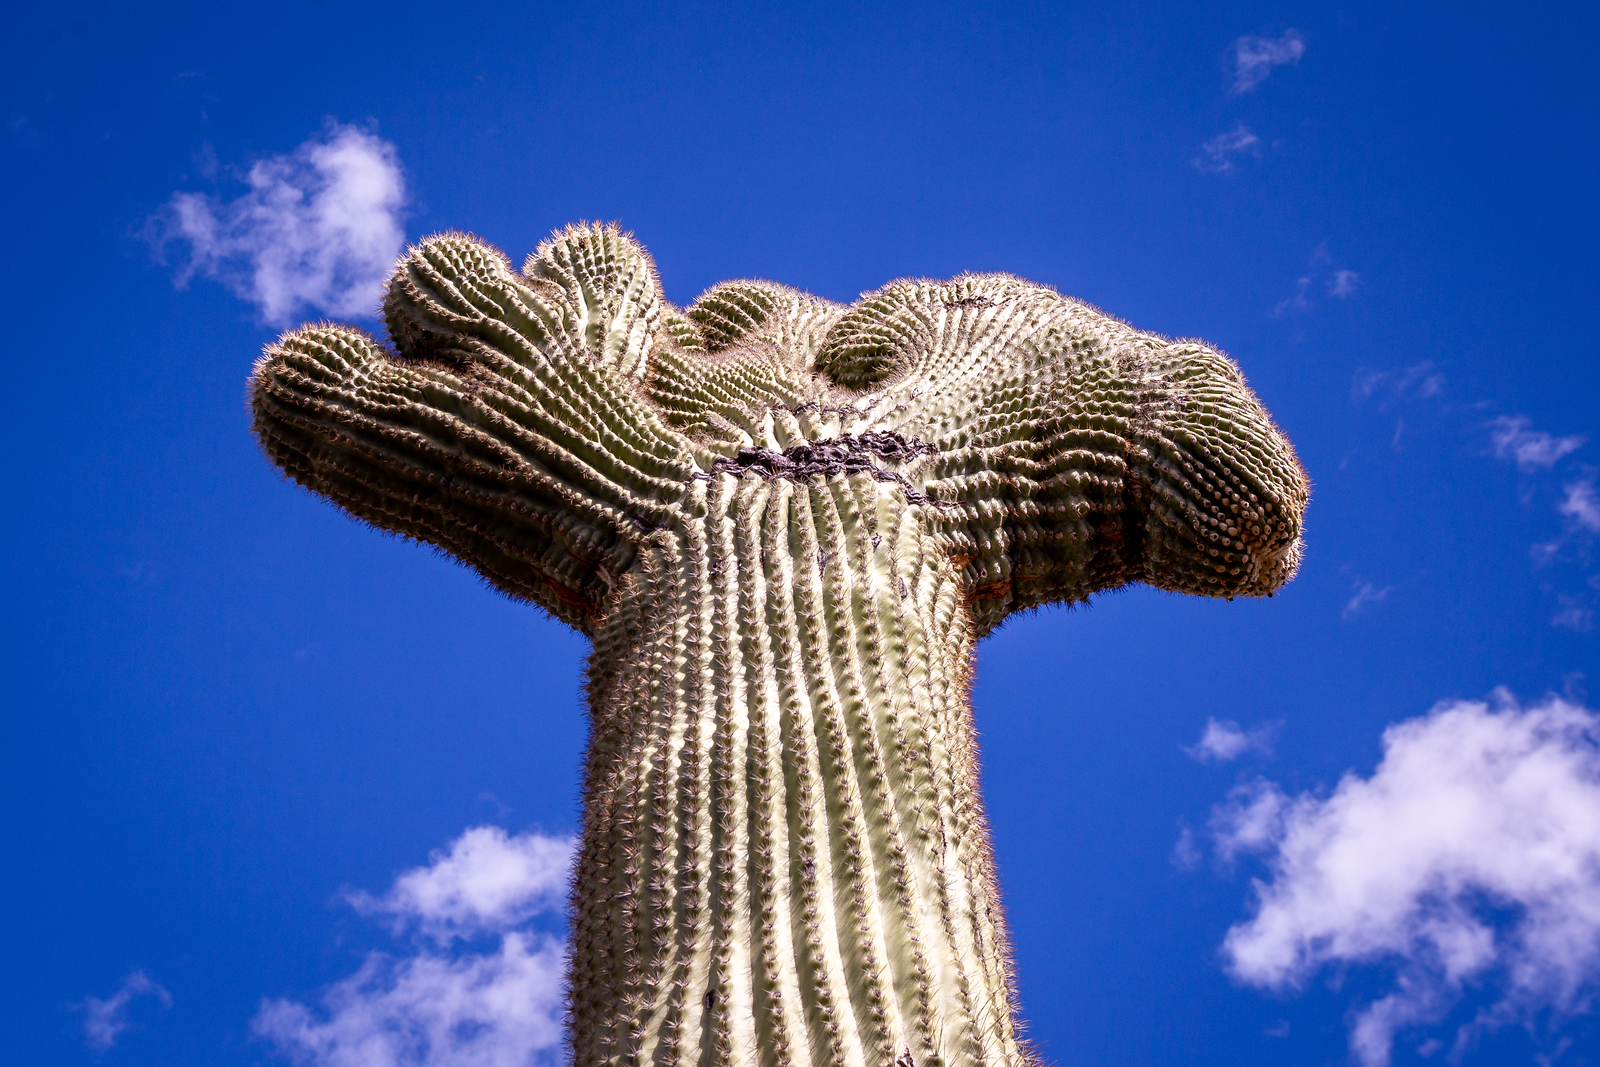 Crested Saguaro in west Tucson